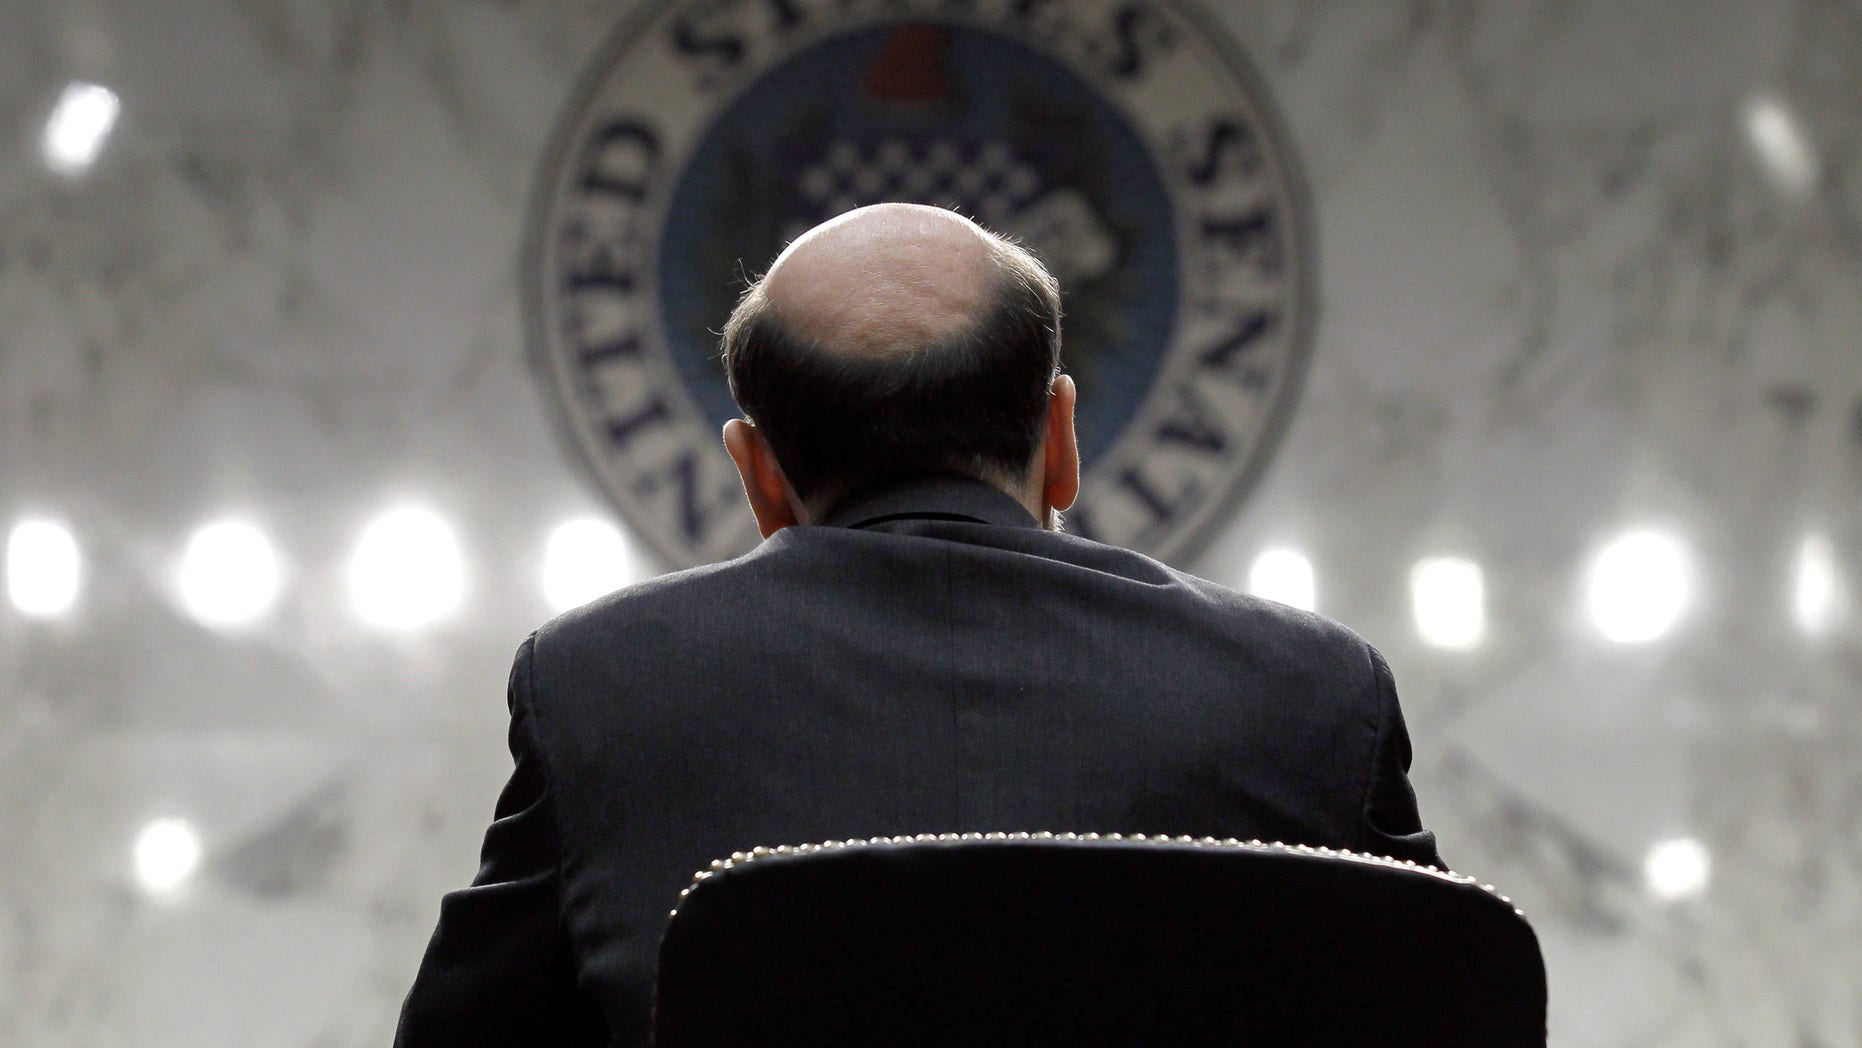 Chairman Ben Bernanke and the Federal Reserve will meet March 15 to debate recent economic risks, such a national unemployment, oil prices, and crises abroad, along with their current stance on the $600 billion Treasury bond-purchase program -- set to expire in June.